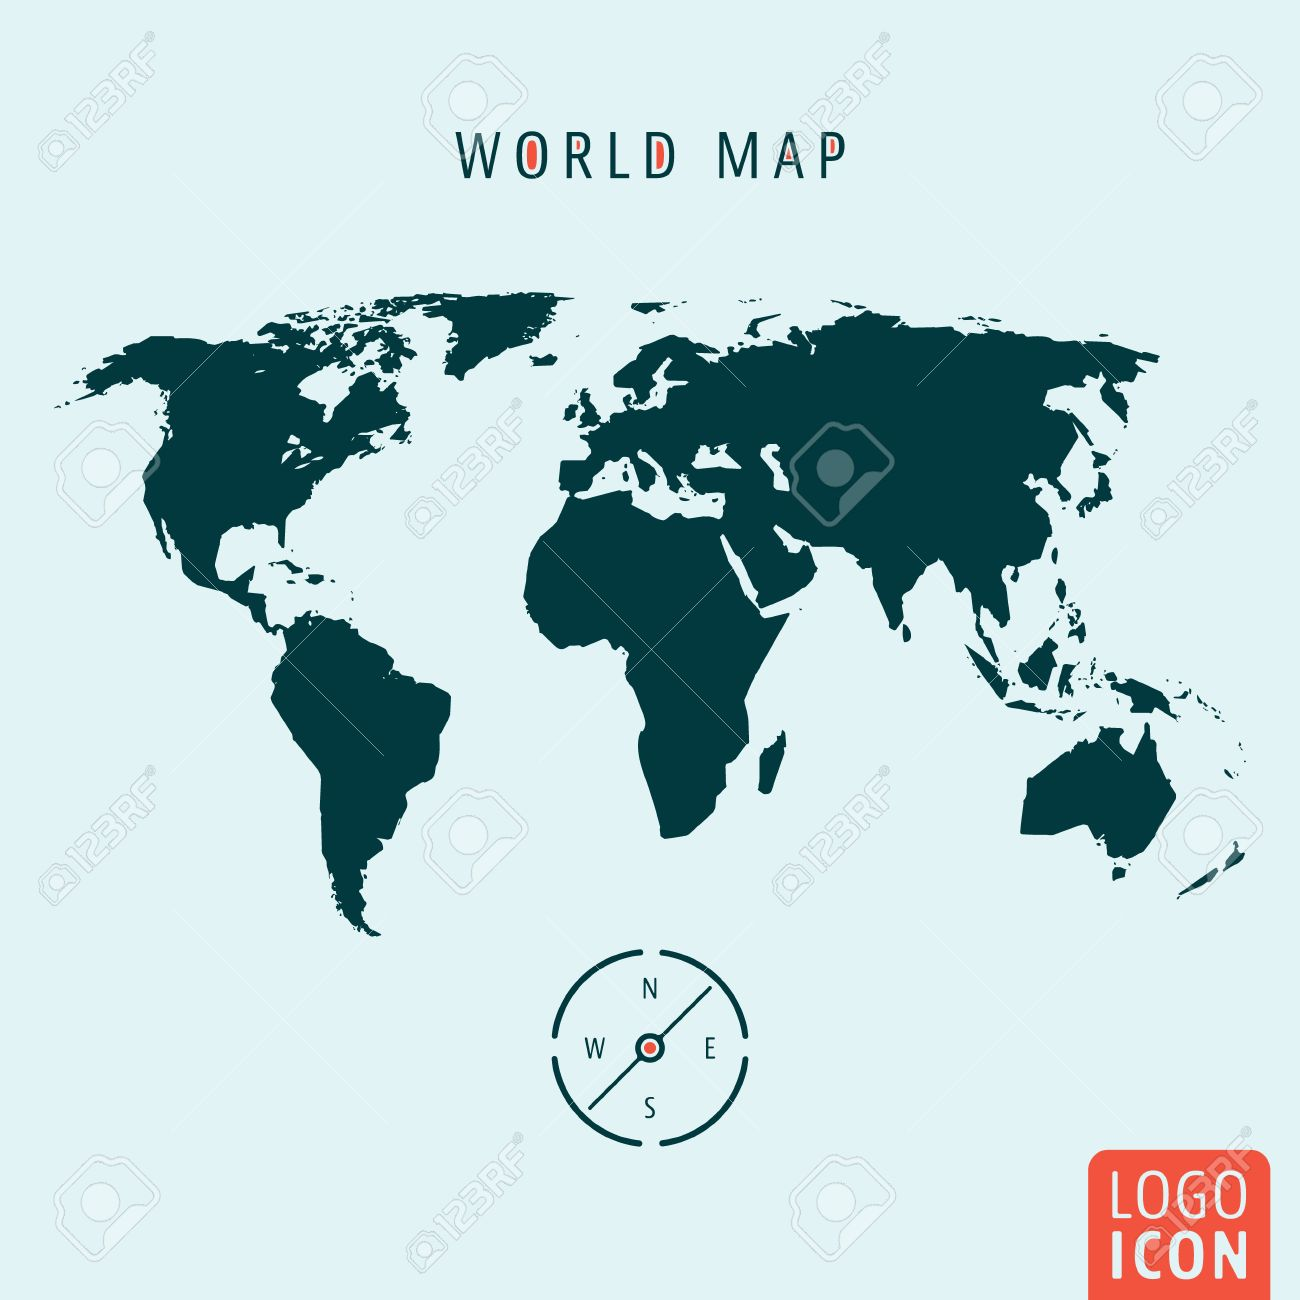 World map icon world map logo world map symbol world map with vector world map icon world map logo world map symbol world map with compass isolated minimal design vector illustration gumiabroncs Image collections